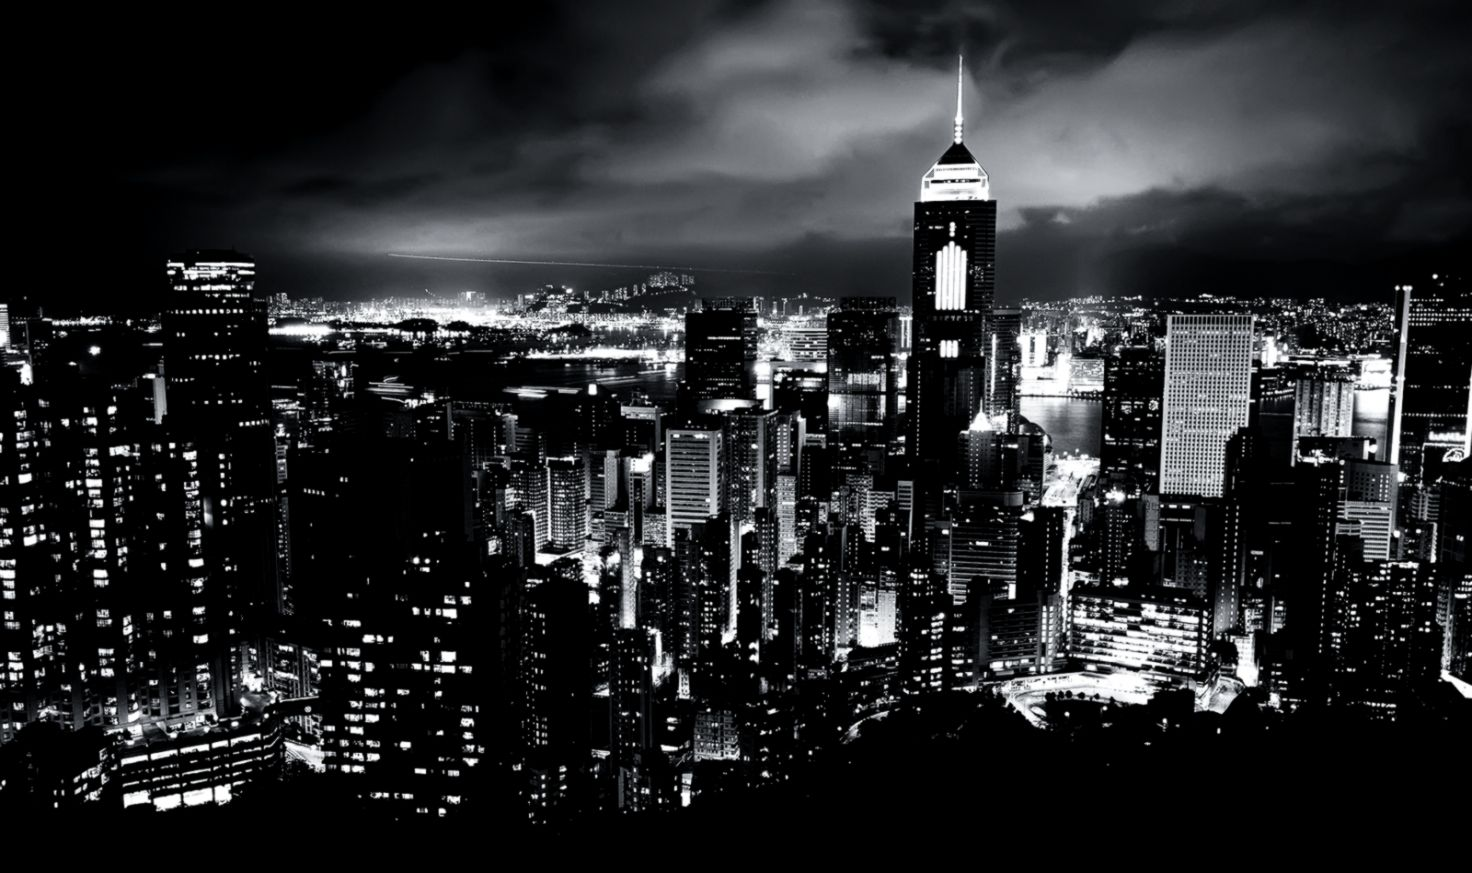 Good Wallpaper Night Black And White - 7DKqf5  Collection.jpg